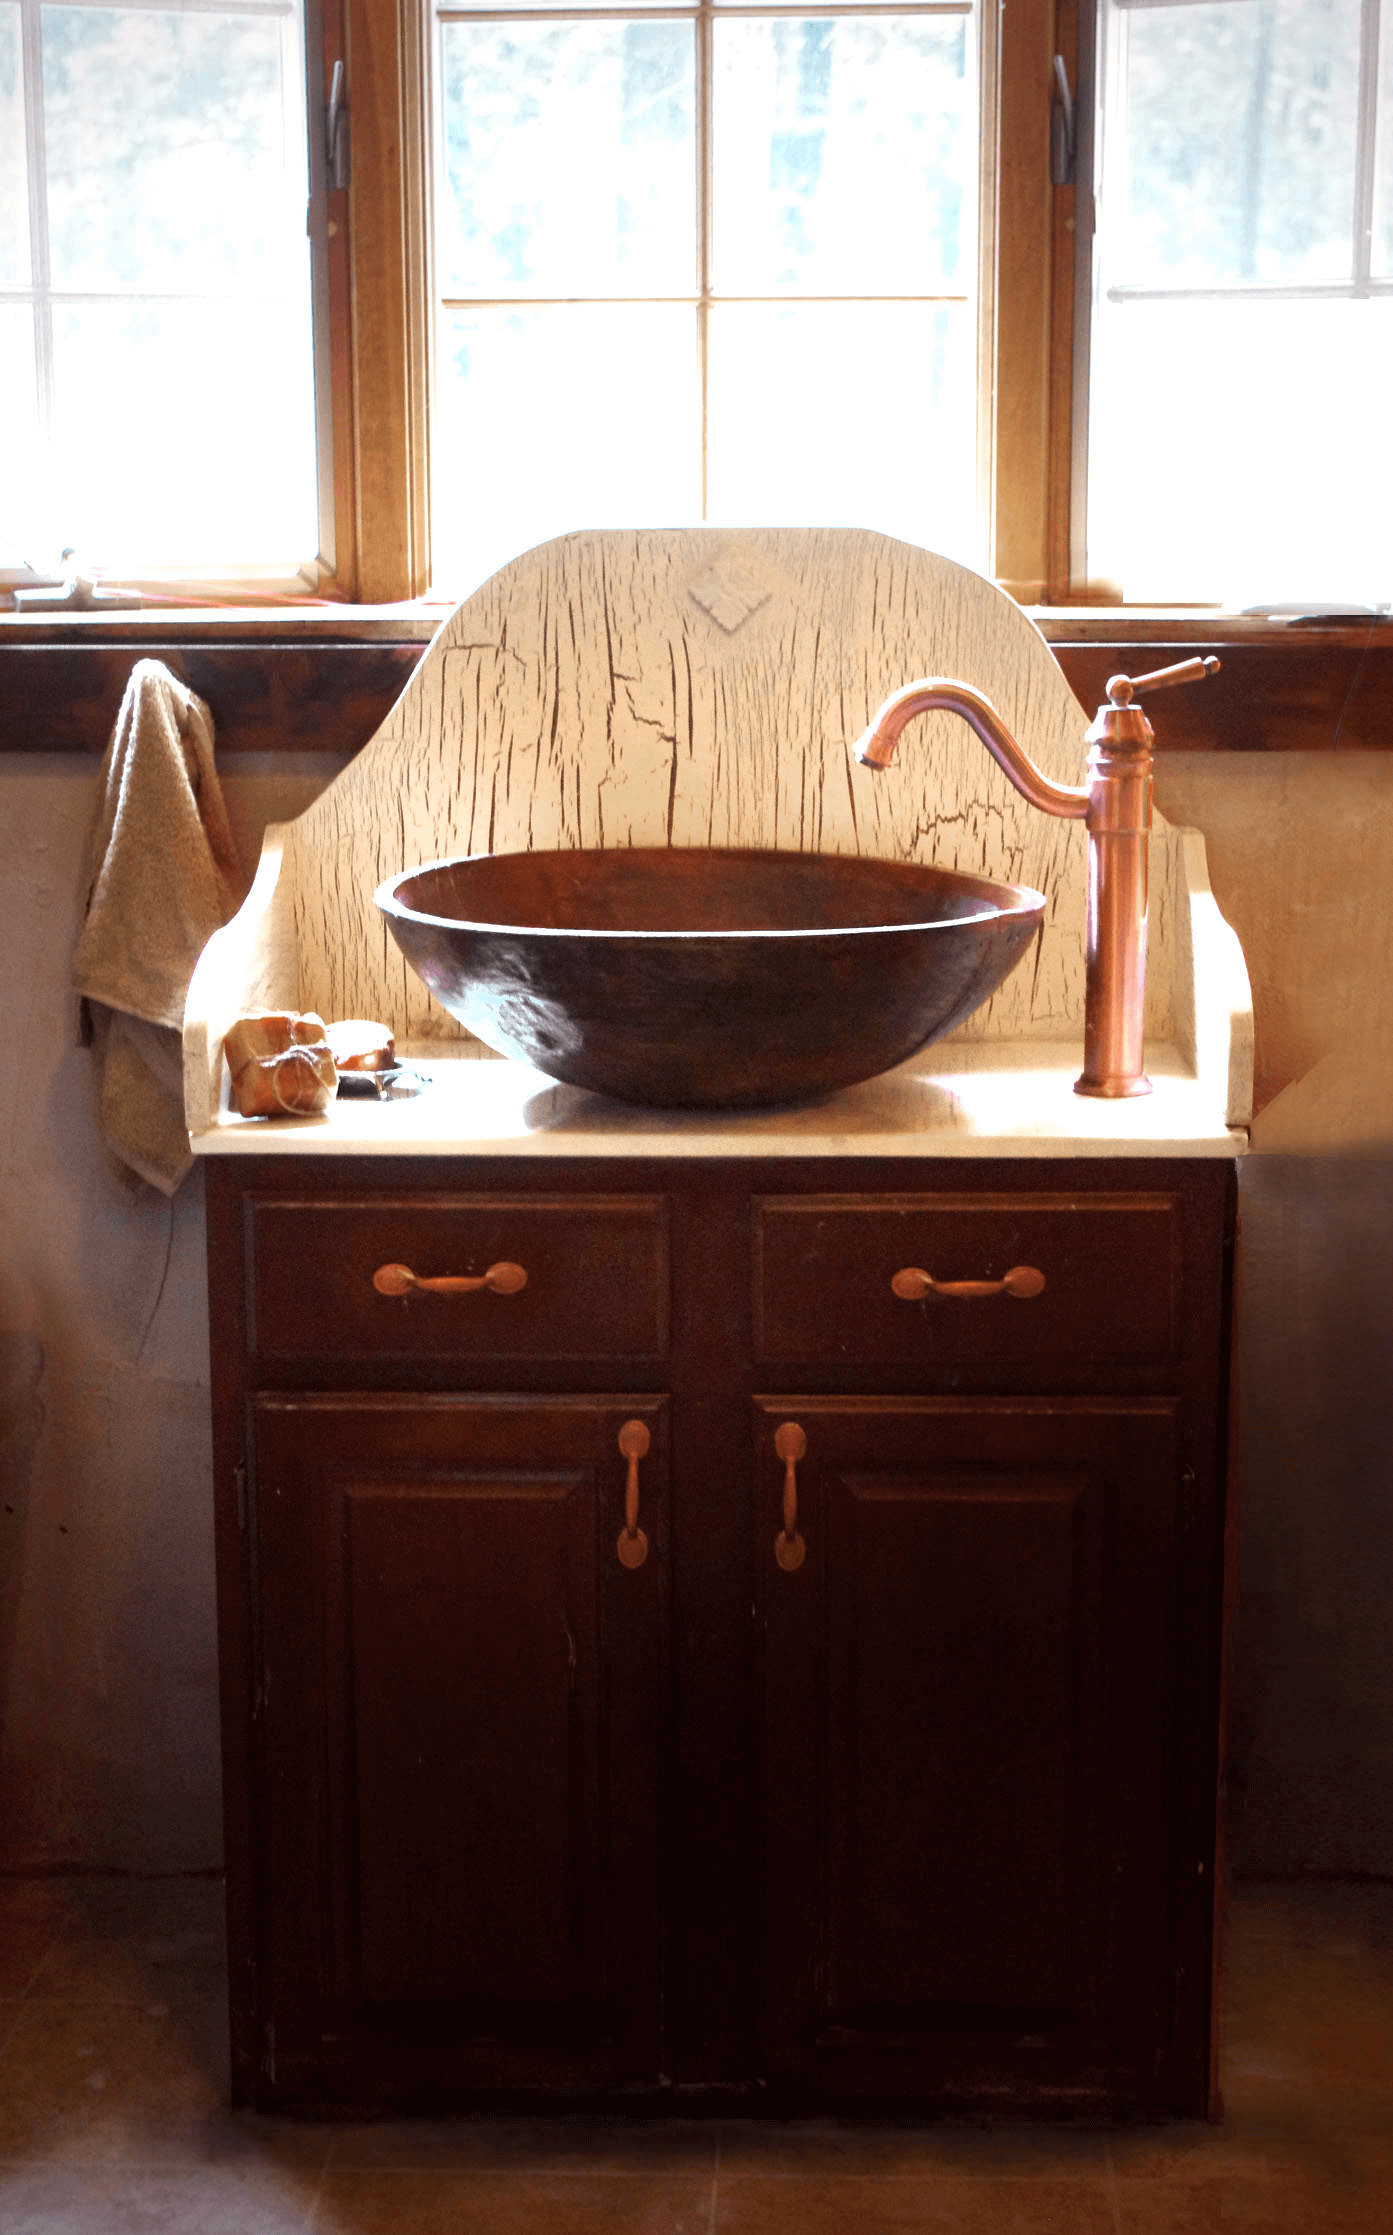 Antique bathroom vanity with bowl vessel sink